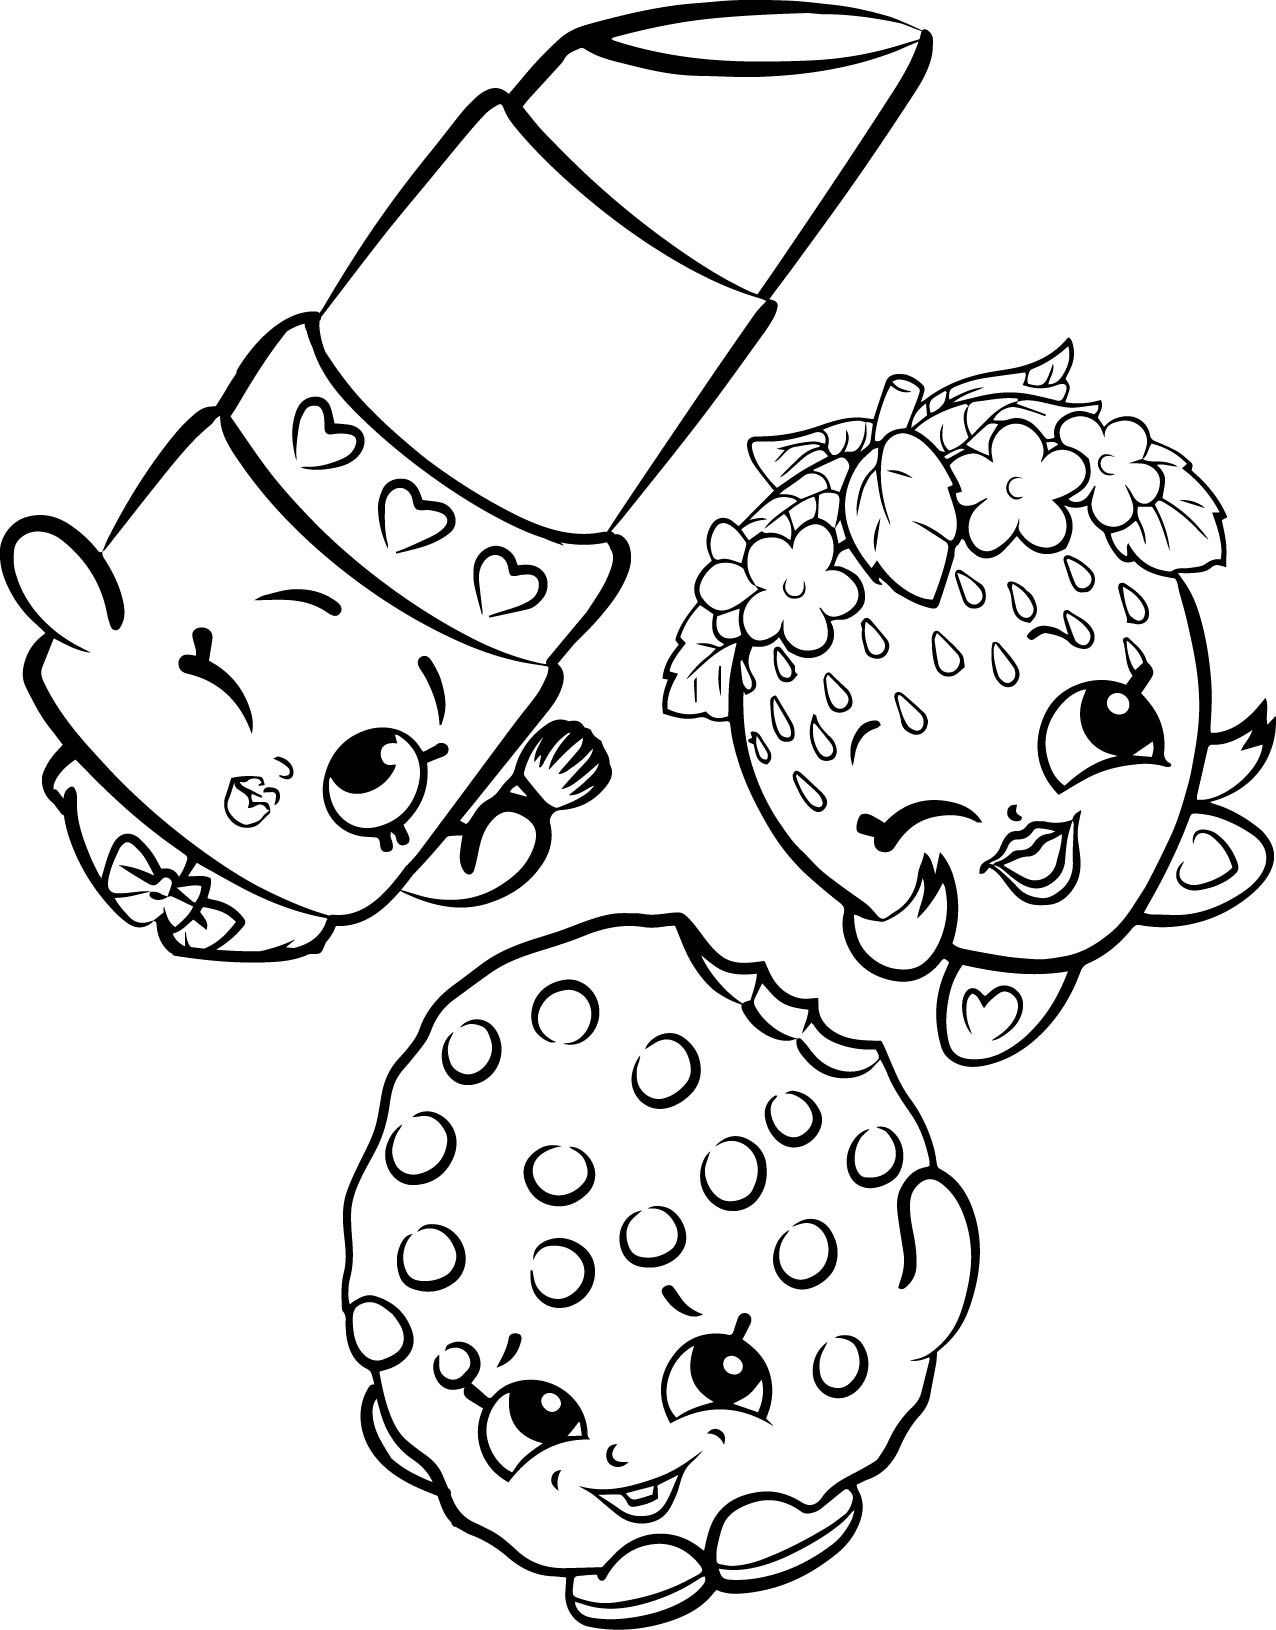 Shopkins Coloring Pages Best Coloring Pages For Kids Shopkin Coloring Pages Shopkins Coloring Pages Free Printable Shopkins Colouring Pages